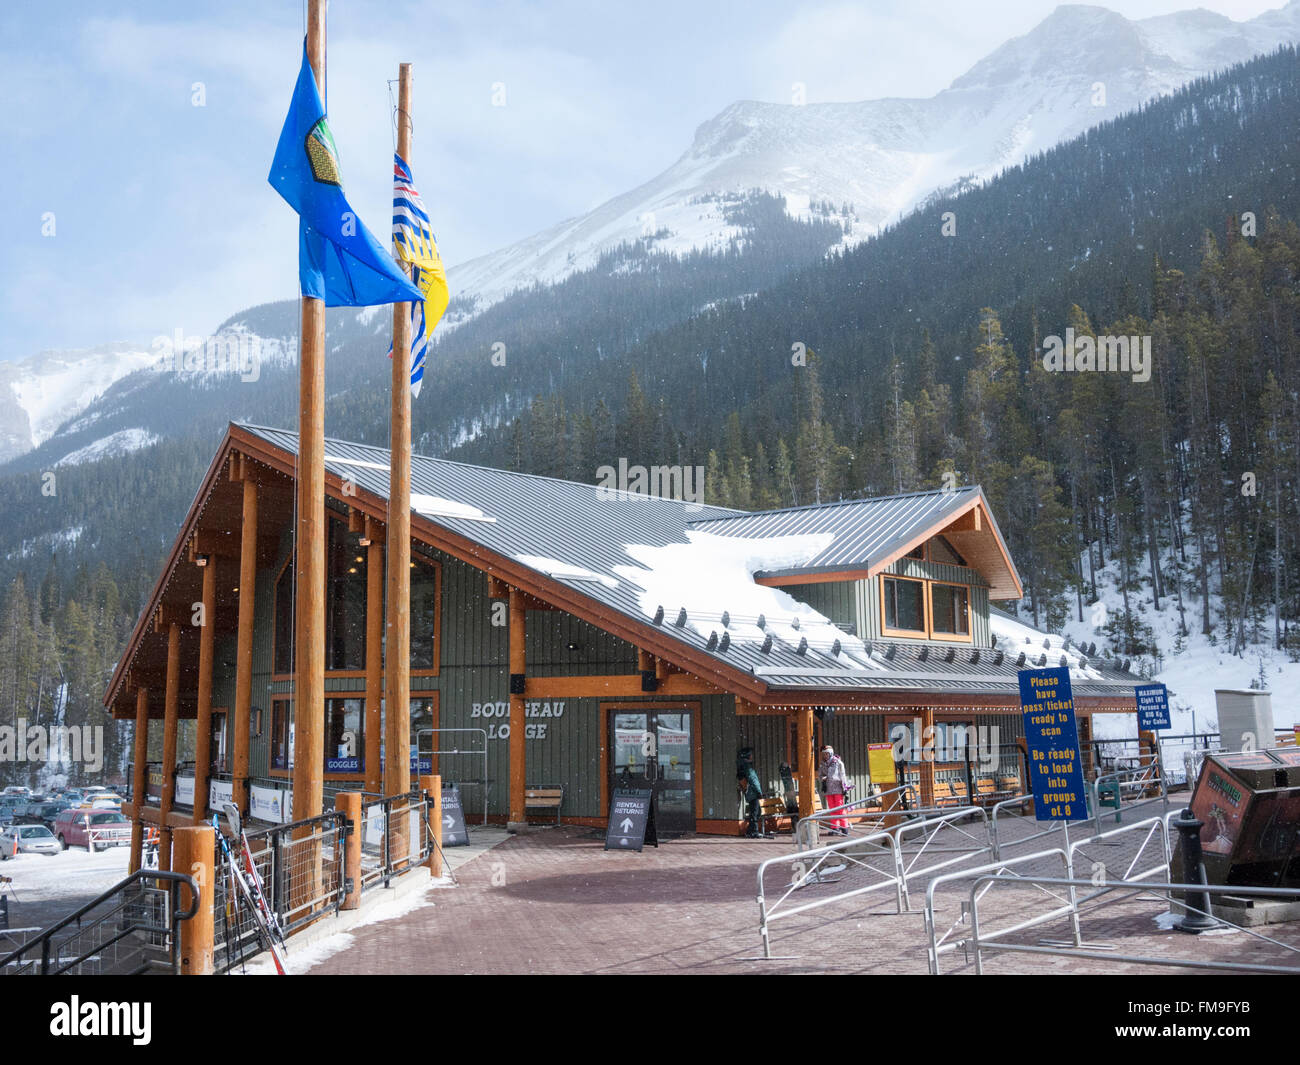 Skiers and the car parking area at the Sunshine Village ski resort Banff Canada - Stock Image